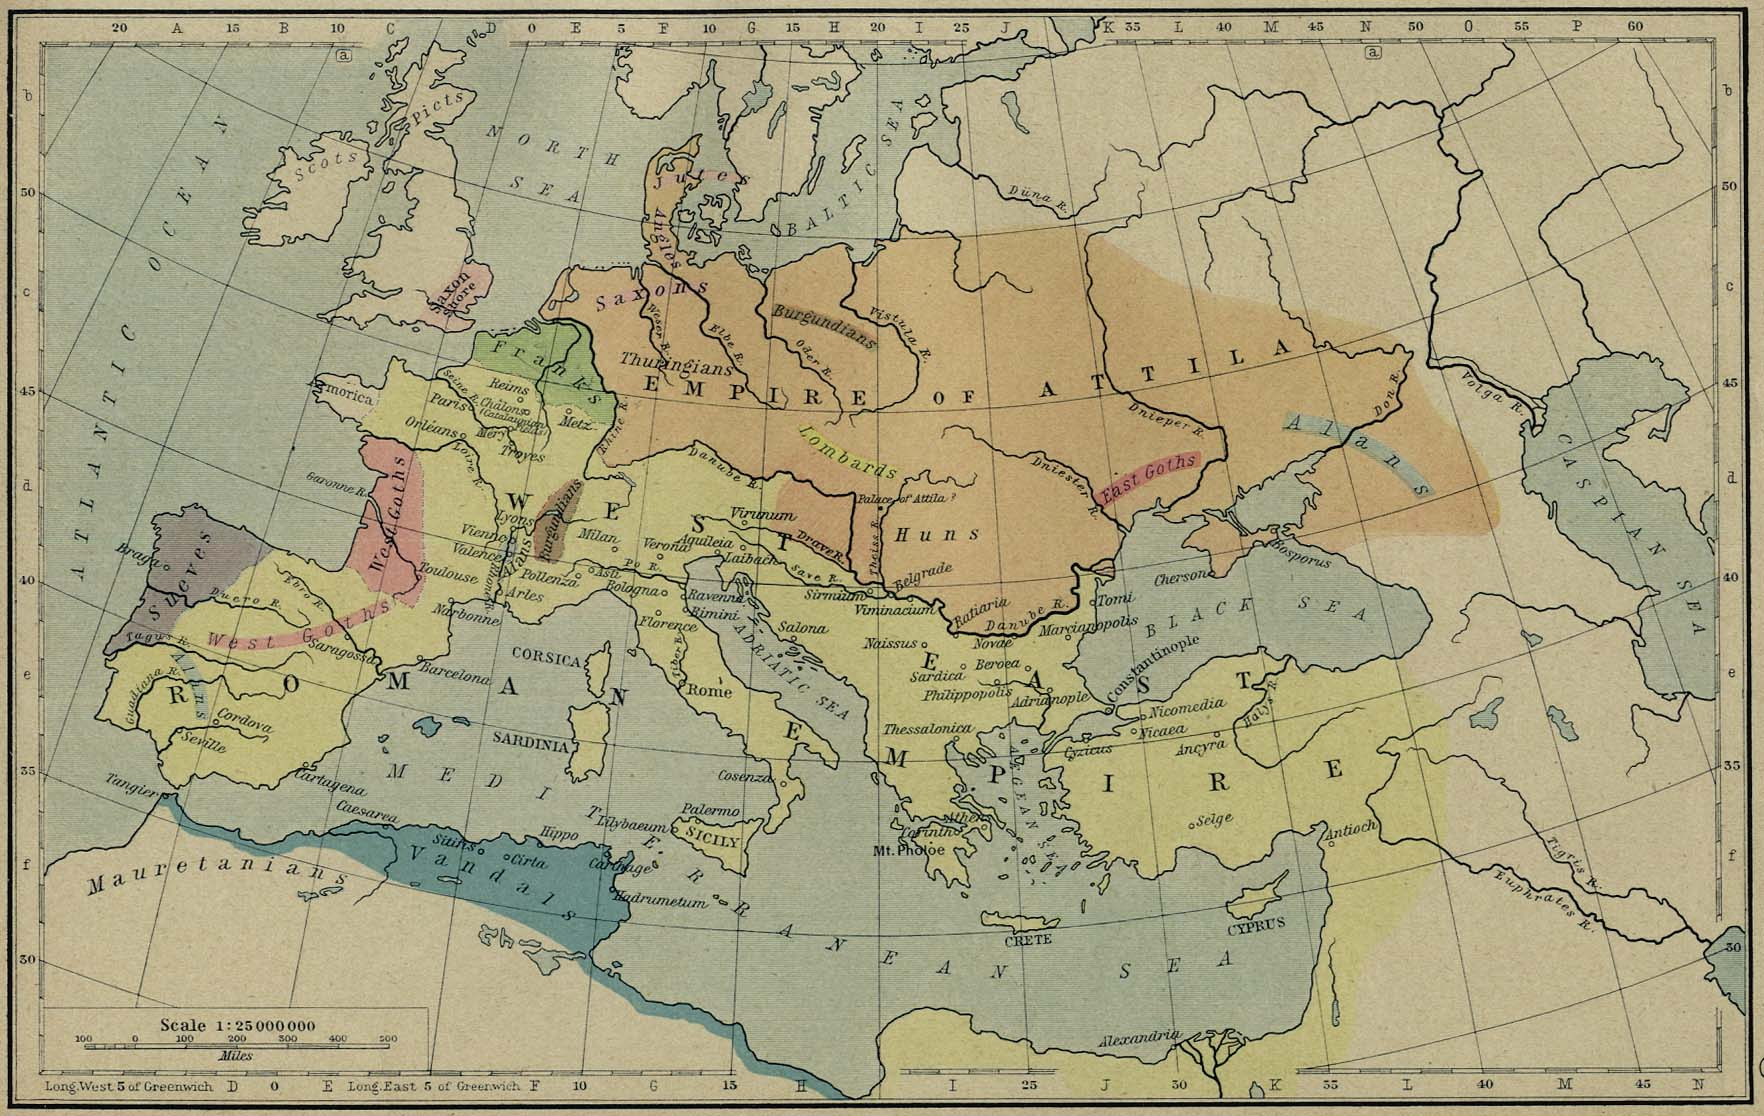 Map of Attila's Empire, the Huns - 450 AD